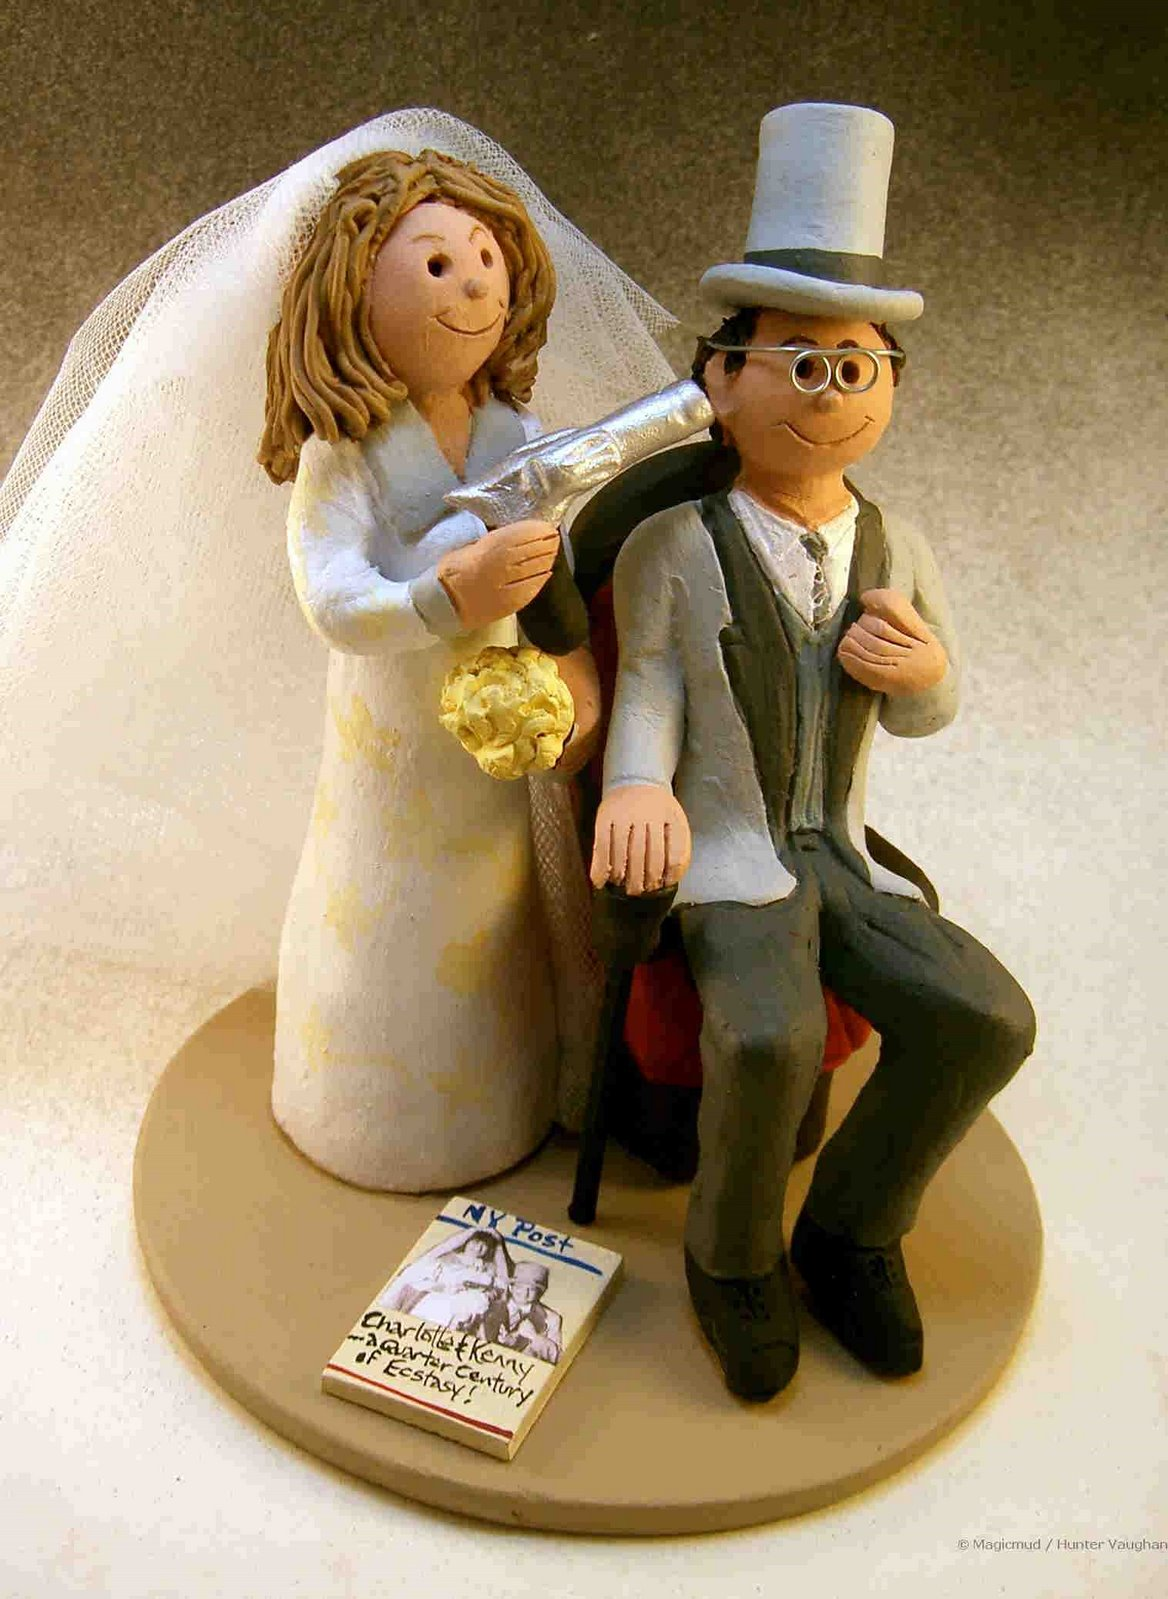 25th Anniversary Cake Topper custom wedding cake toppers